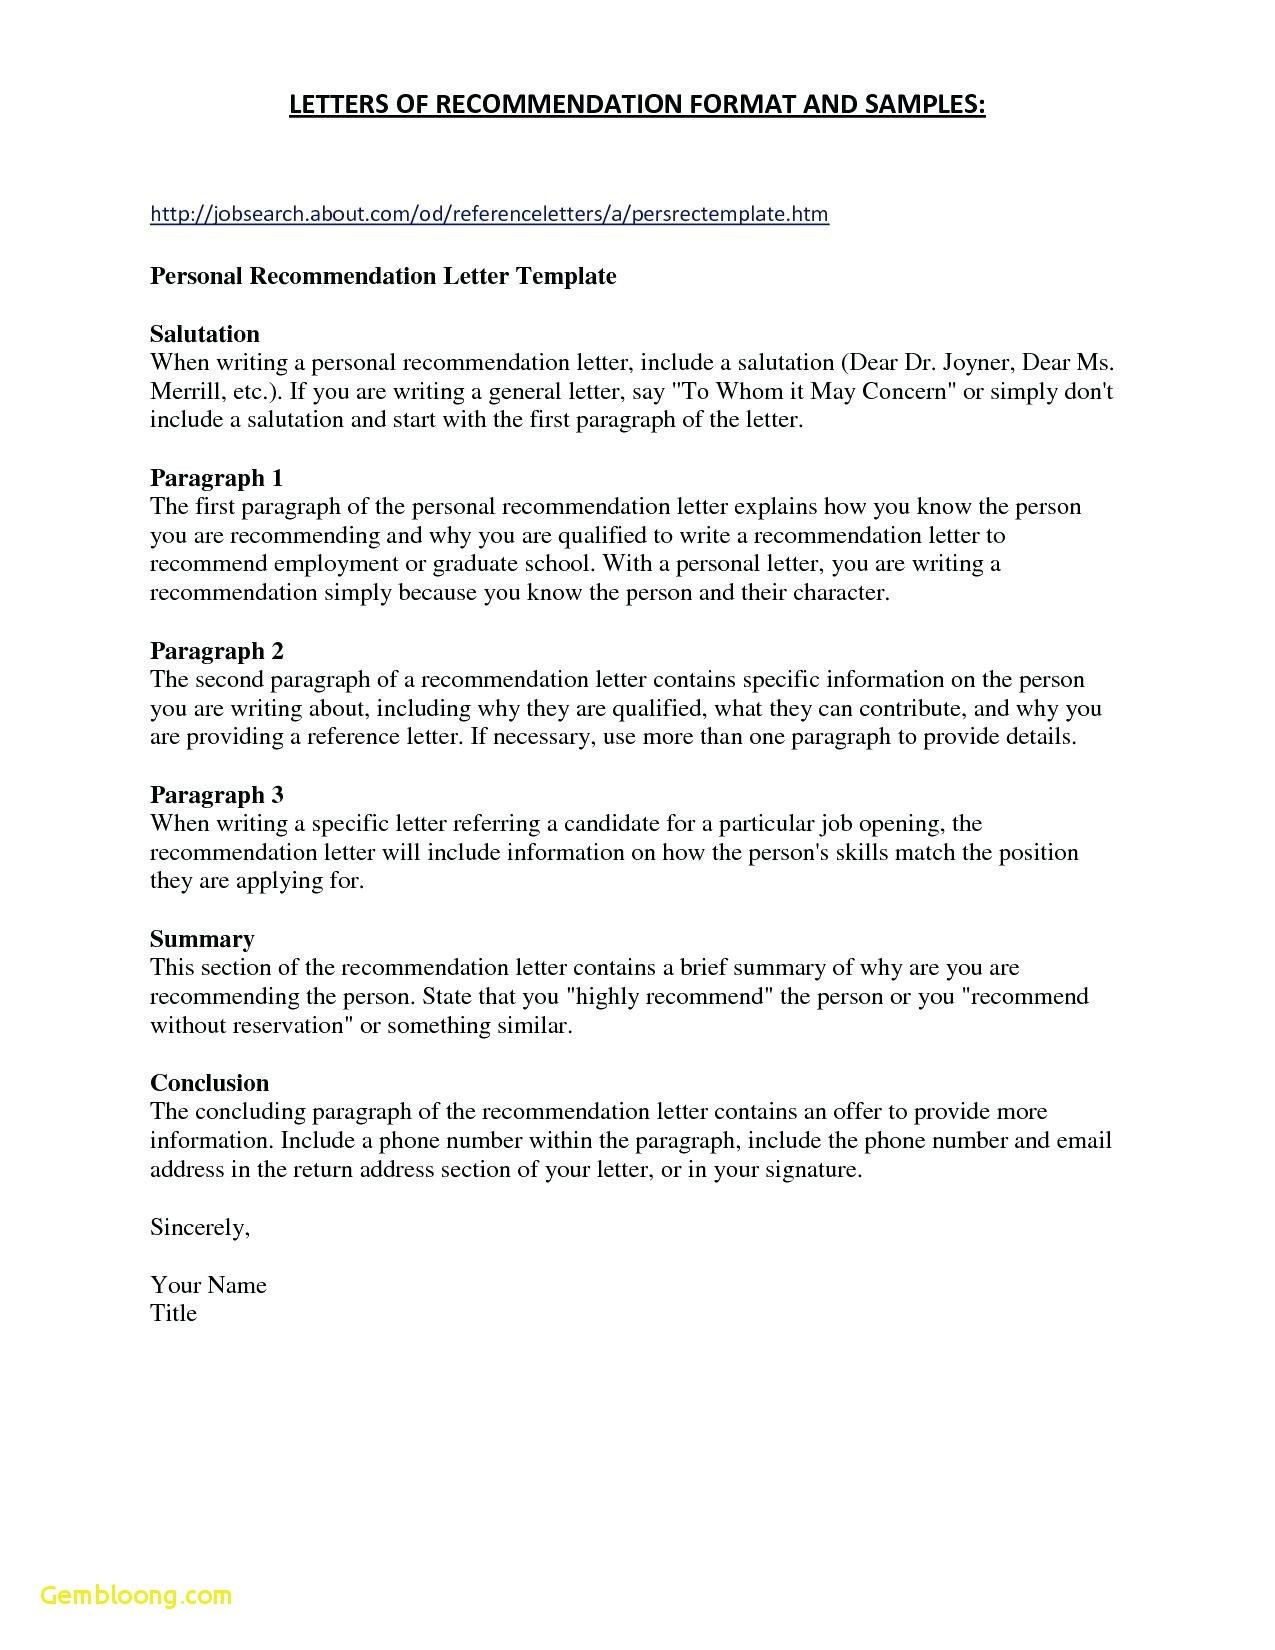 School Recommendation Letter Template - Job Re Mendation Letter Template Best Refrence format Job